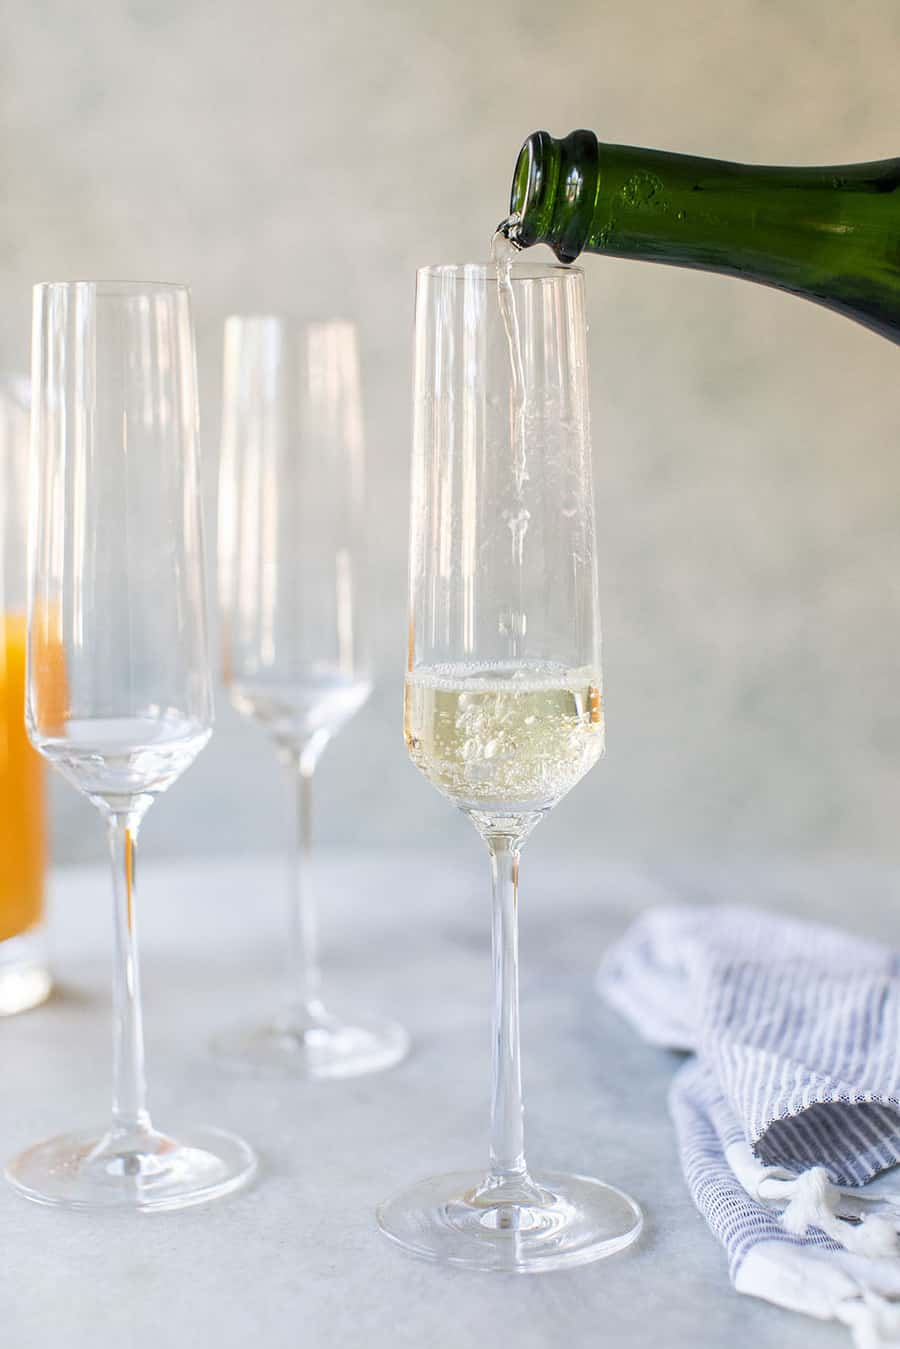 Sparkling white wine being poured into a Champagne Flute.